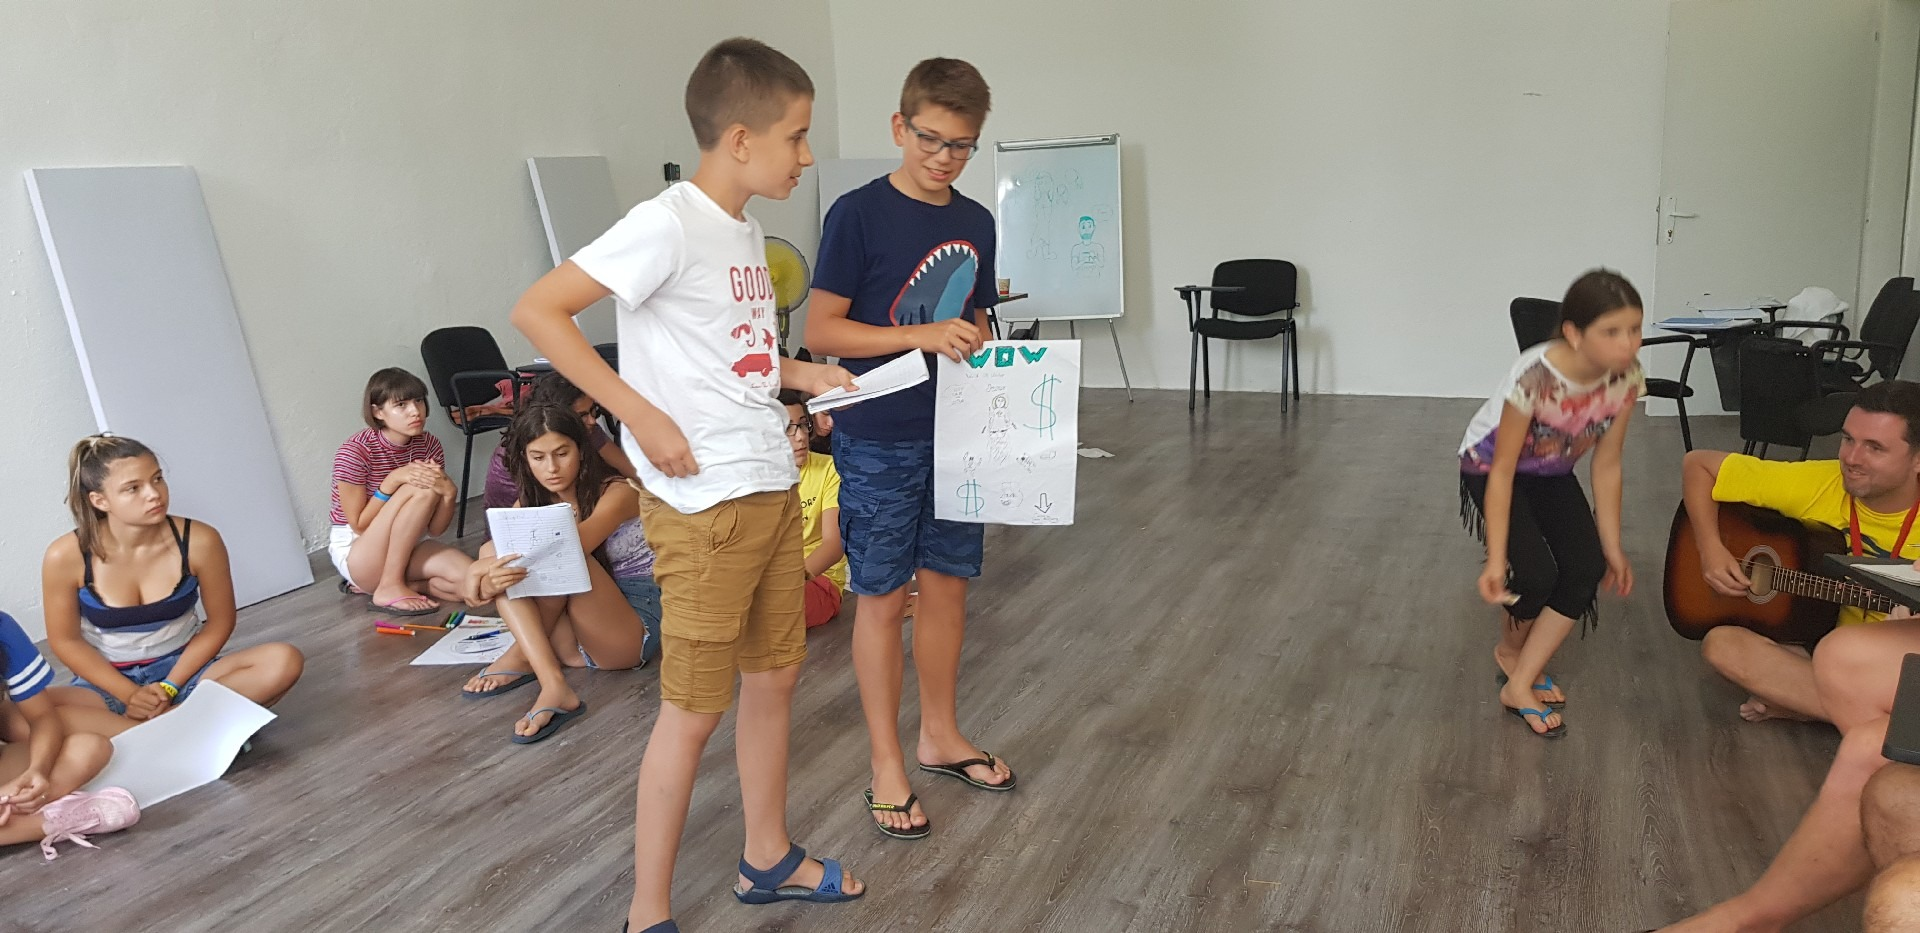 summer language camps for kids Z camp, day 31 - morning class in English, two boys present a project